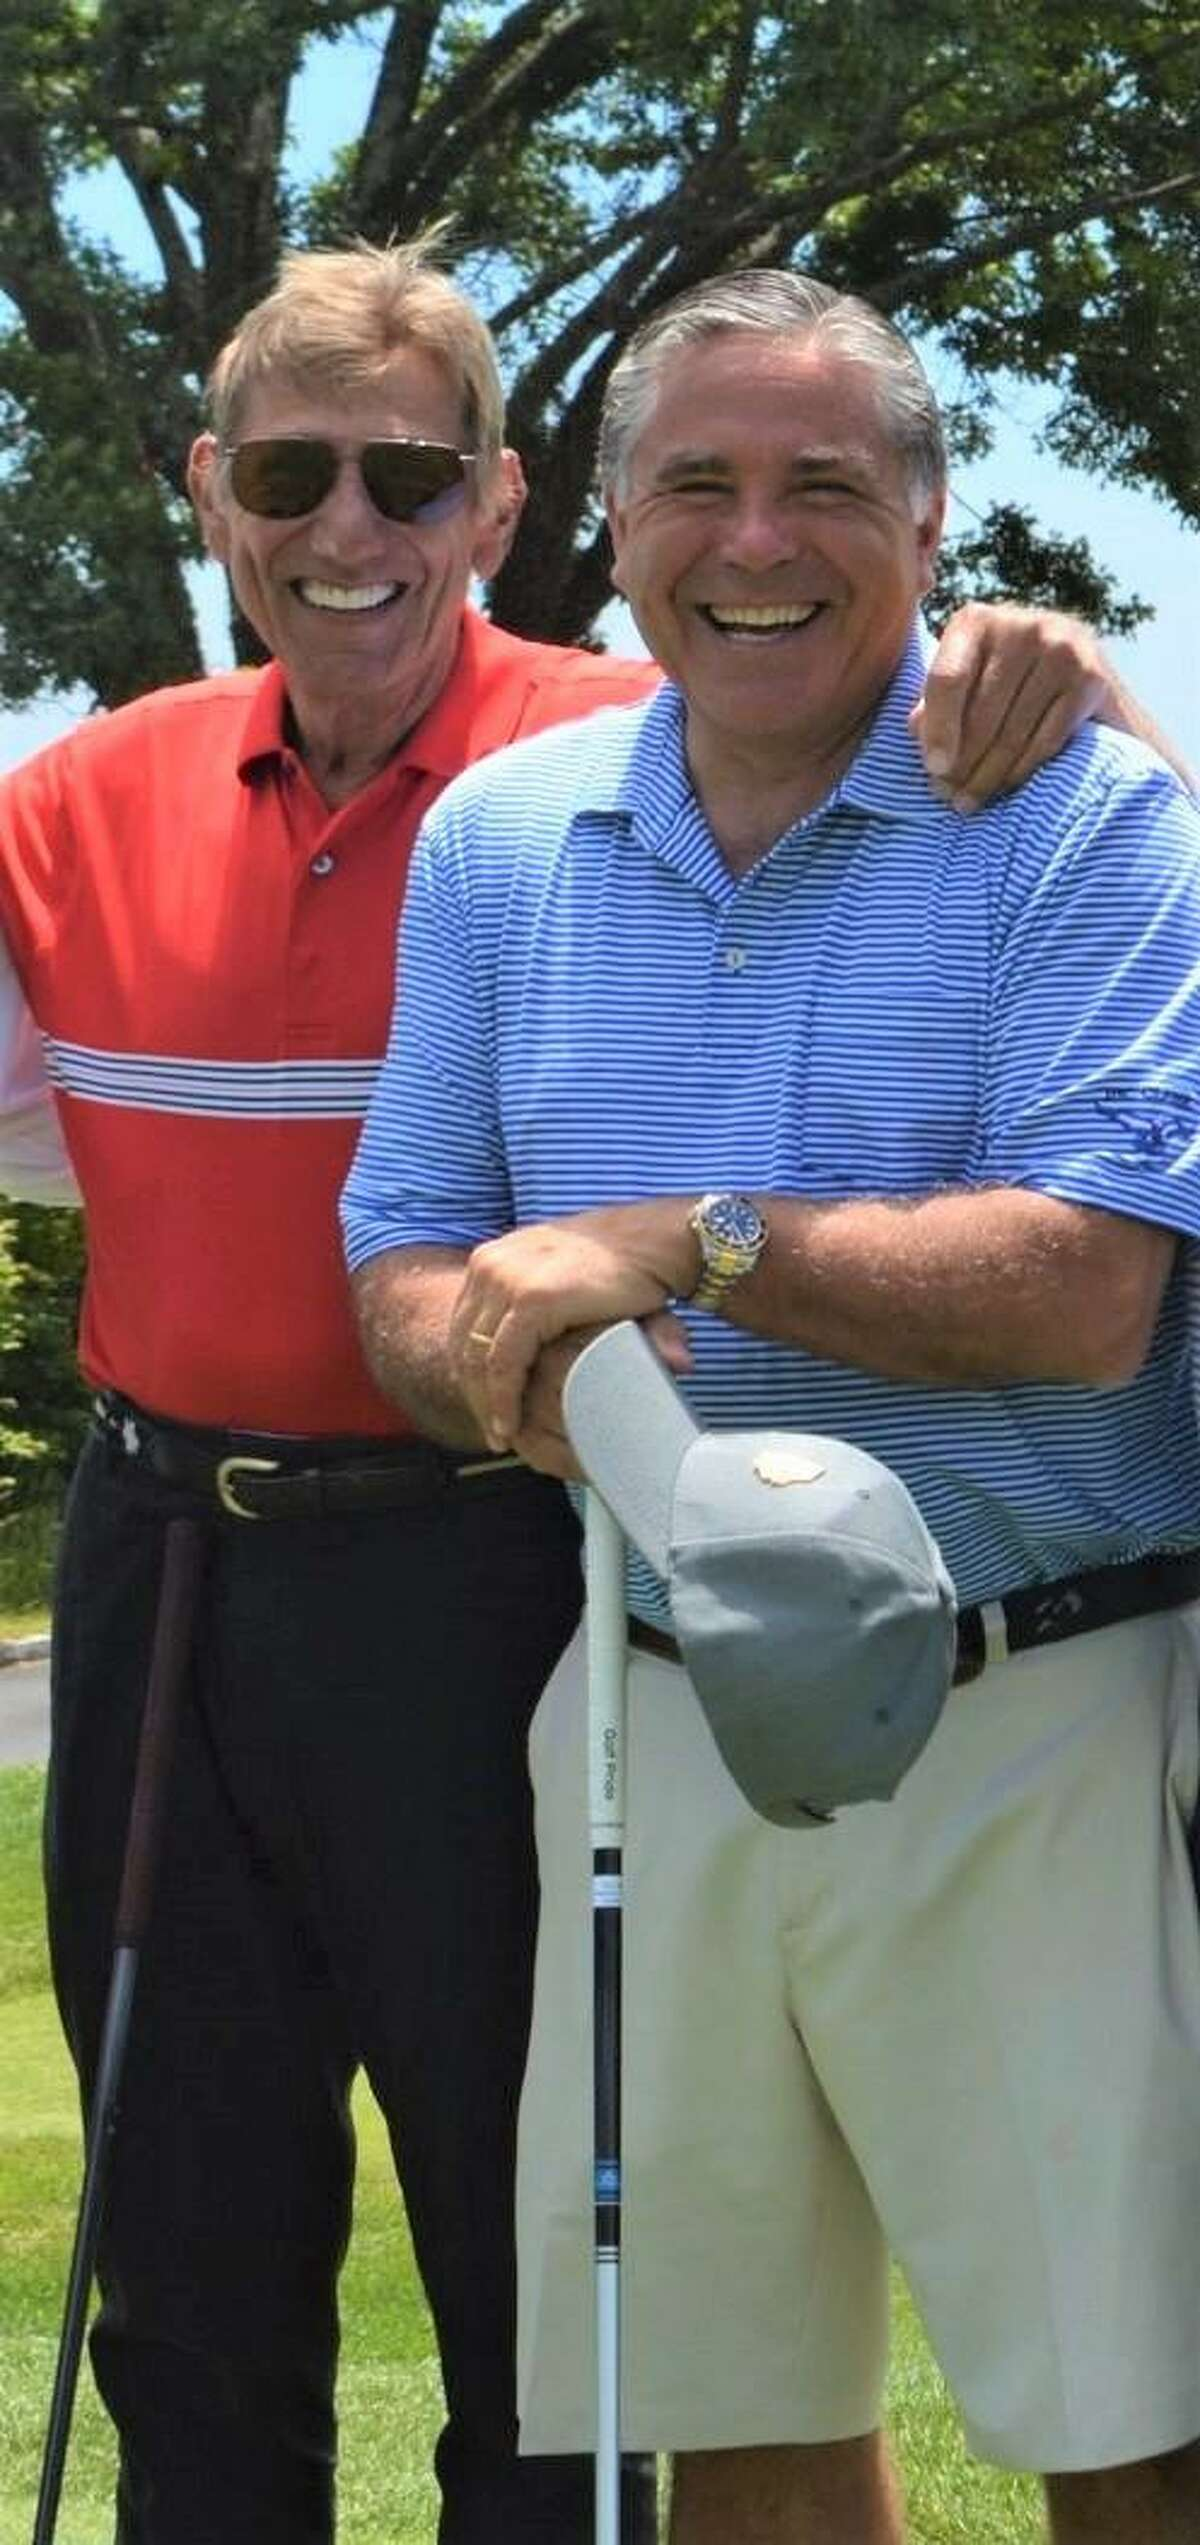 NFL great Joe Namath with Old Greenwich resident Joe Cabrera at the 21st annual James & Helen Cabrera Classic annual golf and tennis tournament at Greenwich Country Club in June.